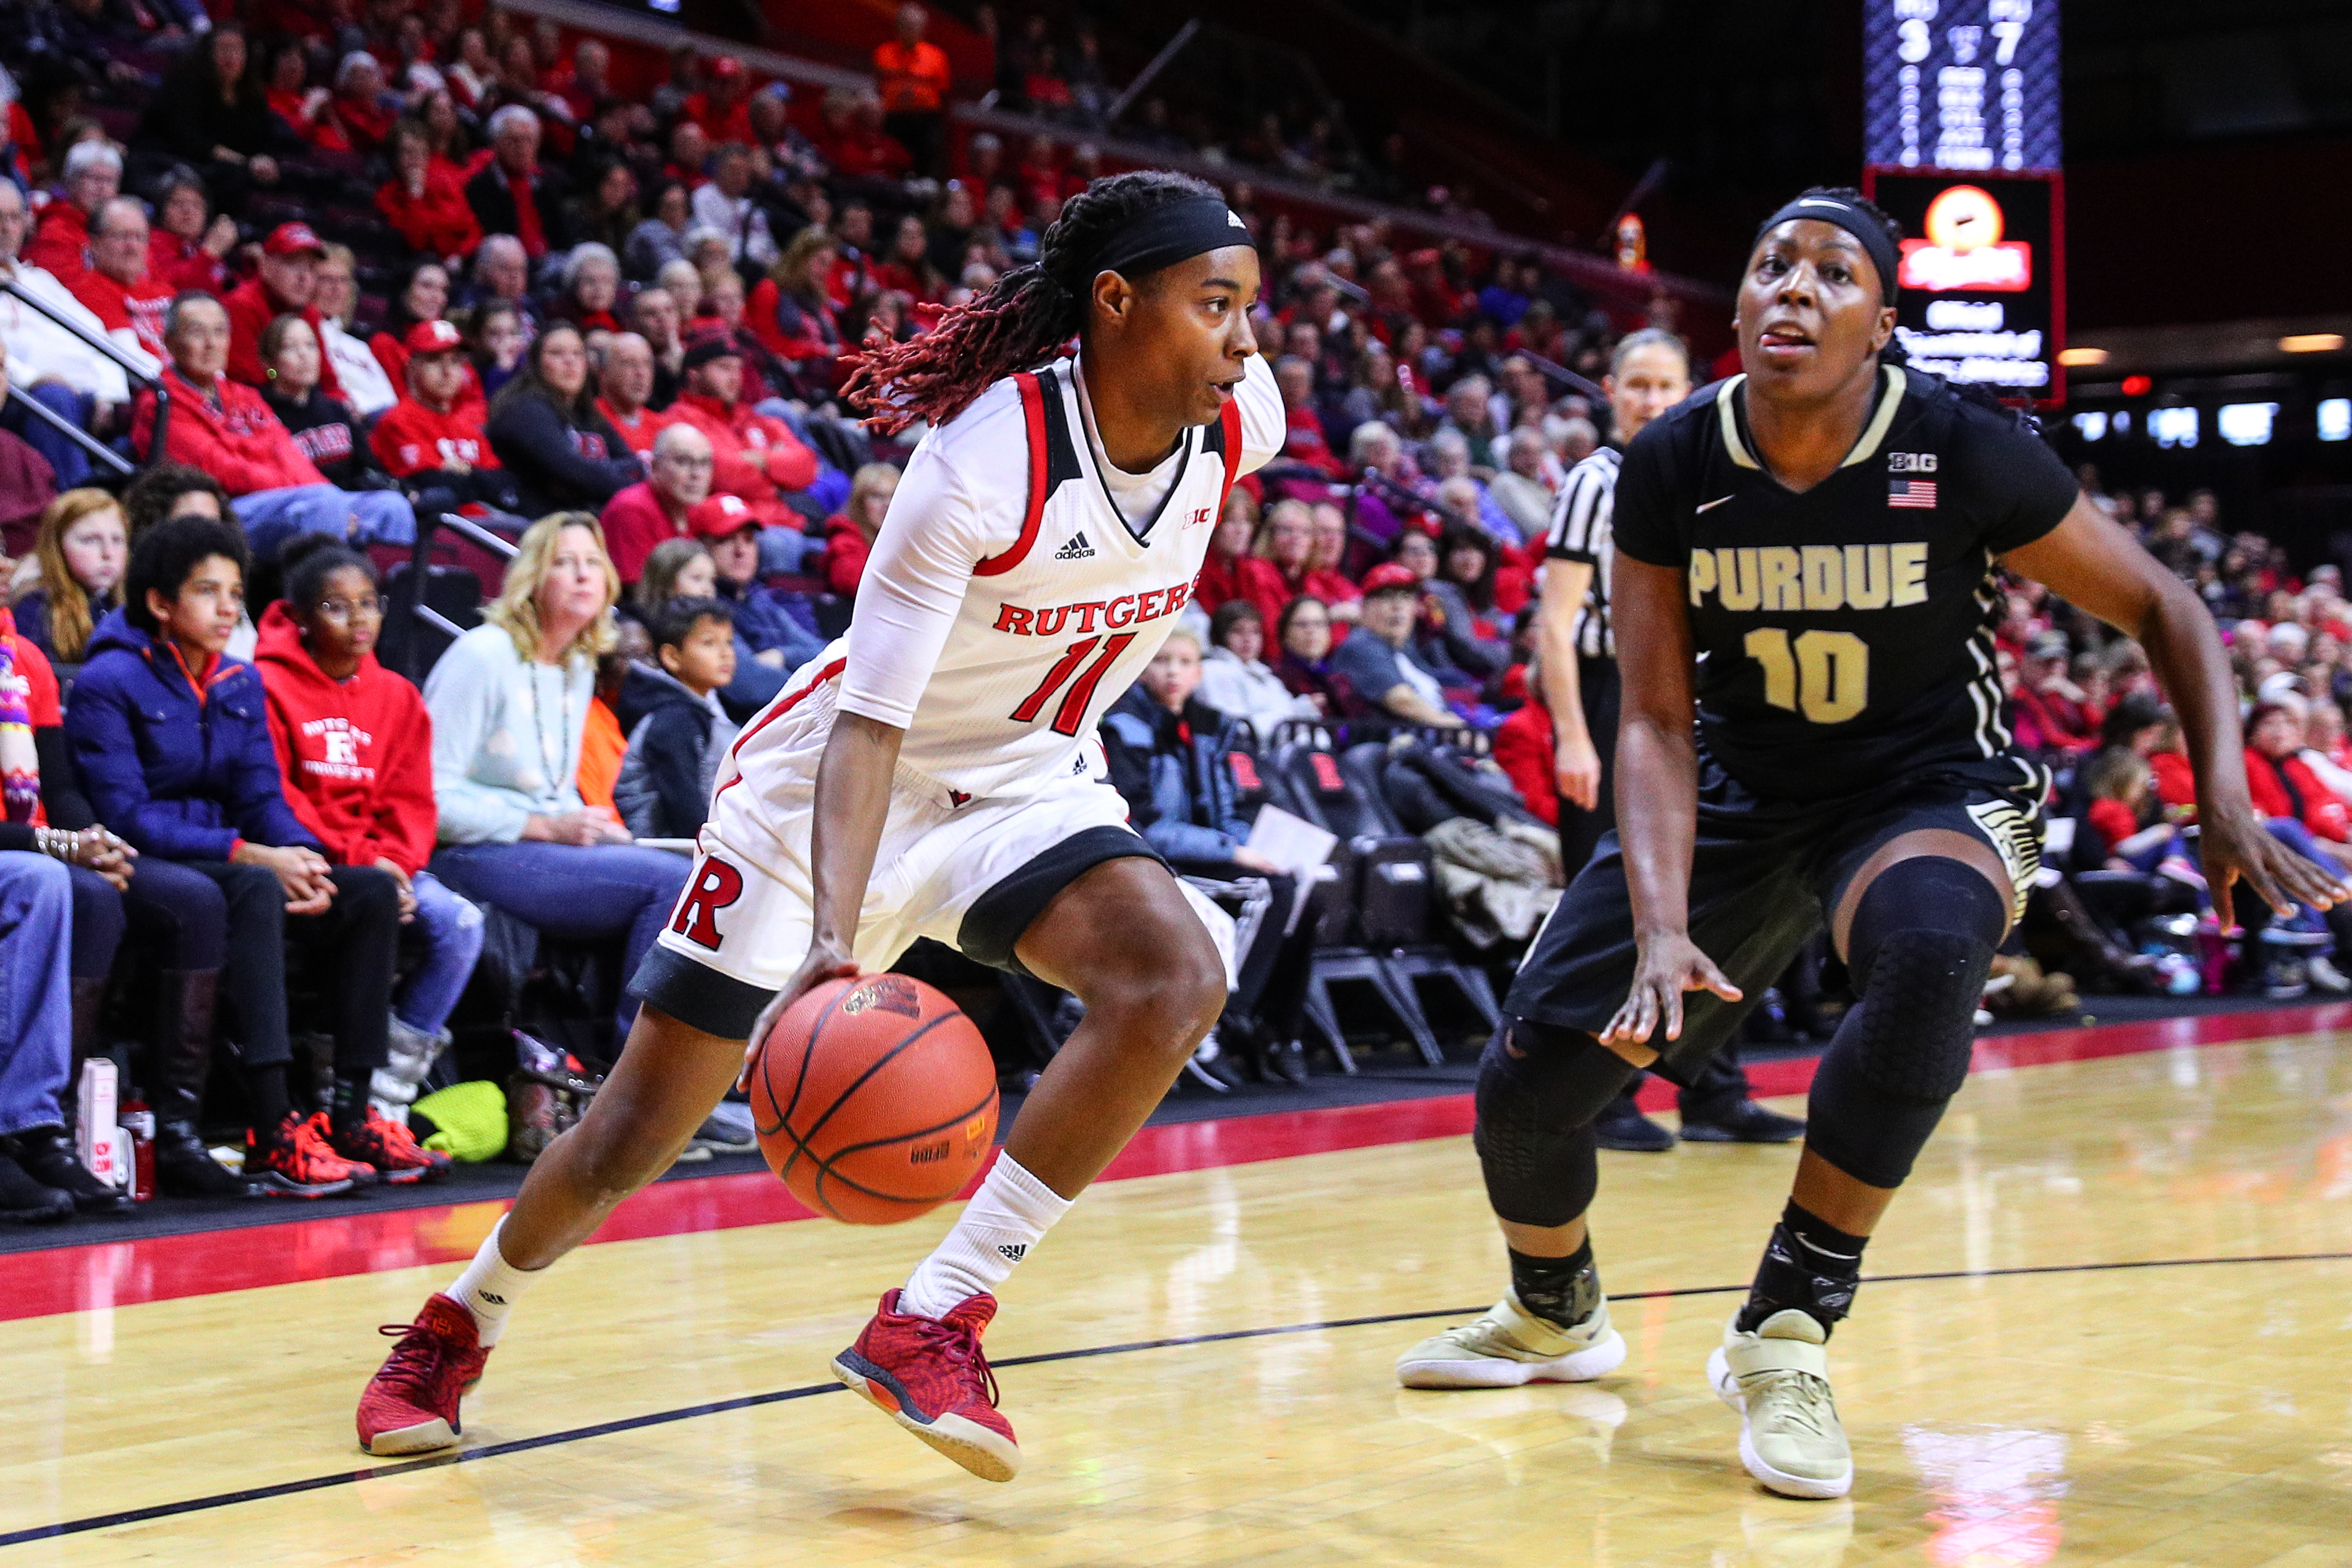 Rutgers Women's Basketball - On the Banks